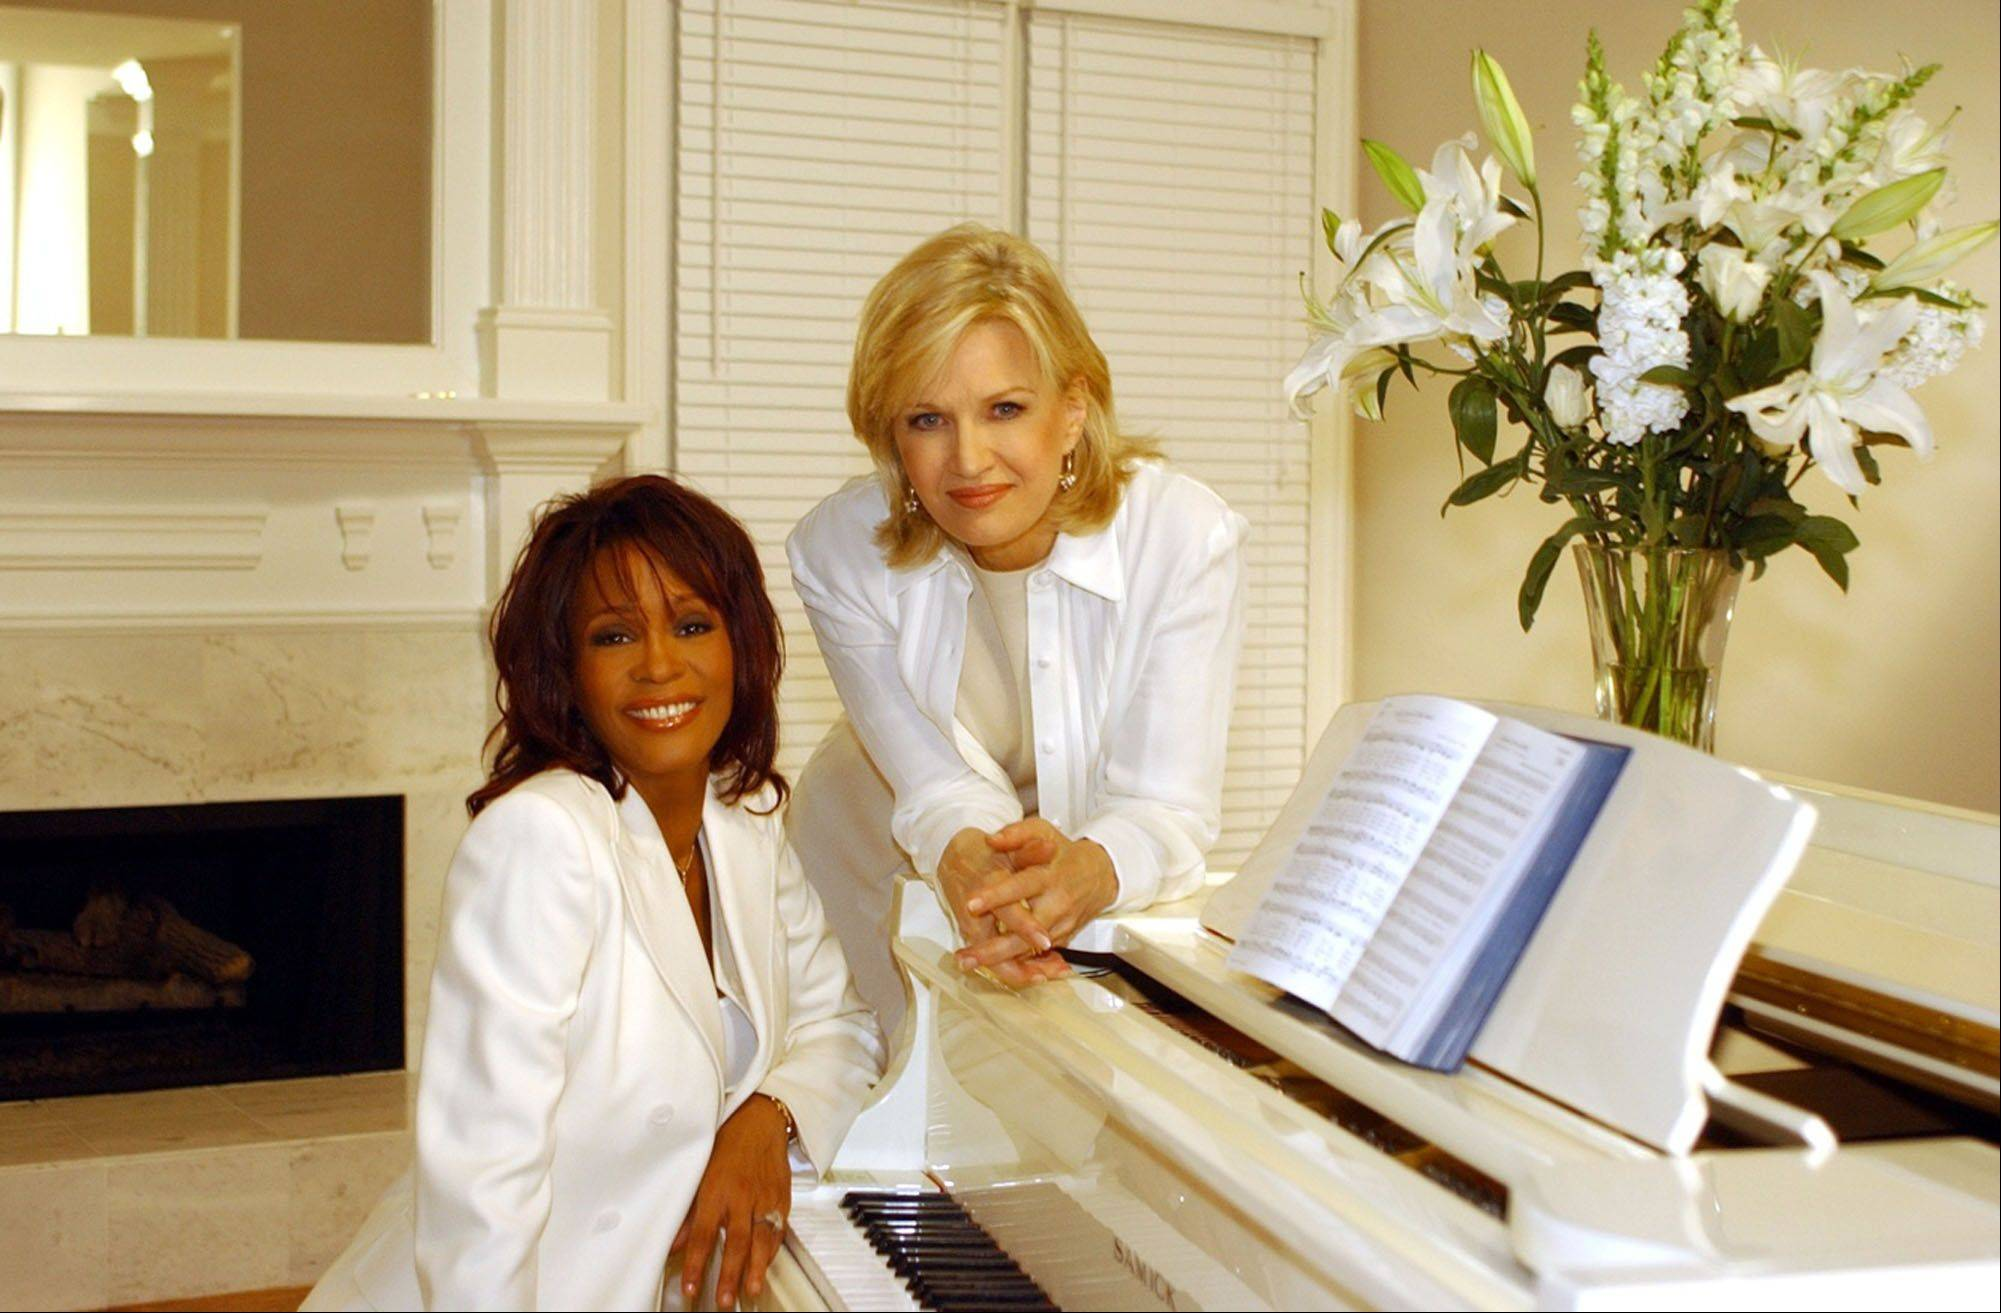 ABC News' Diane Sawyer sits down for a rare interview with superstar Whitney Houston at her home in 2002 in suburban Atlanta. Houston admitted she'd abused drugs in the past but said she's gotten beyond that time through prayer.